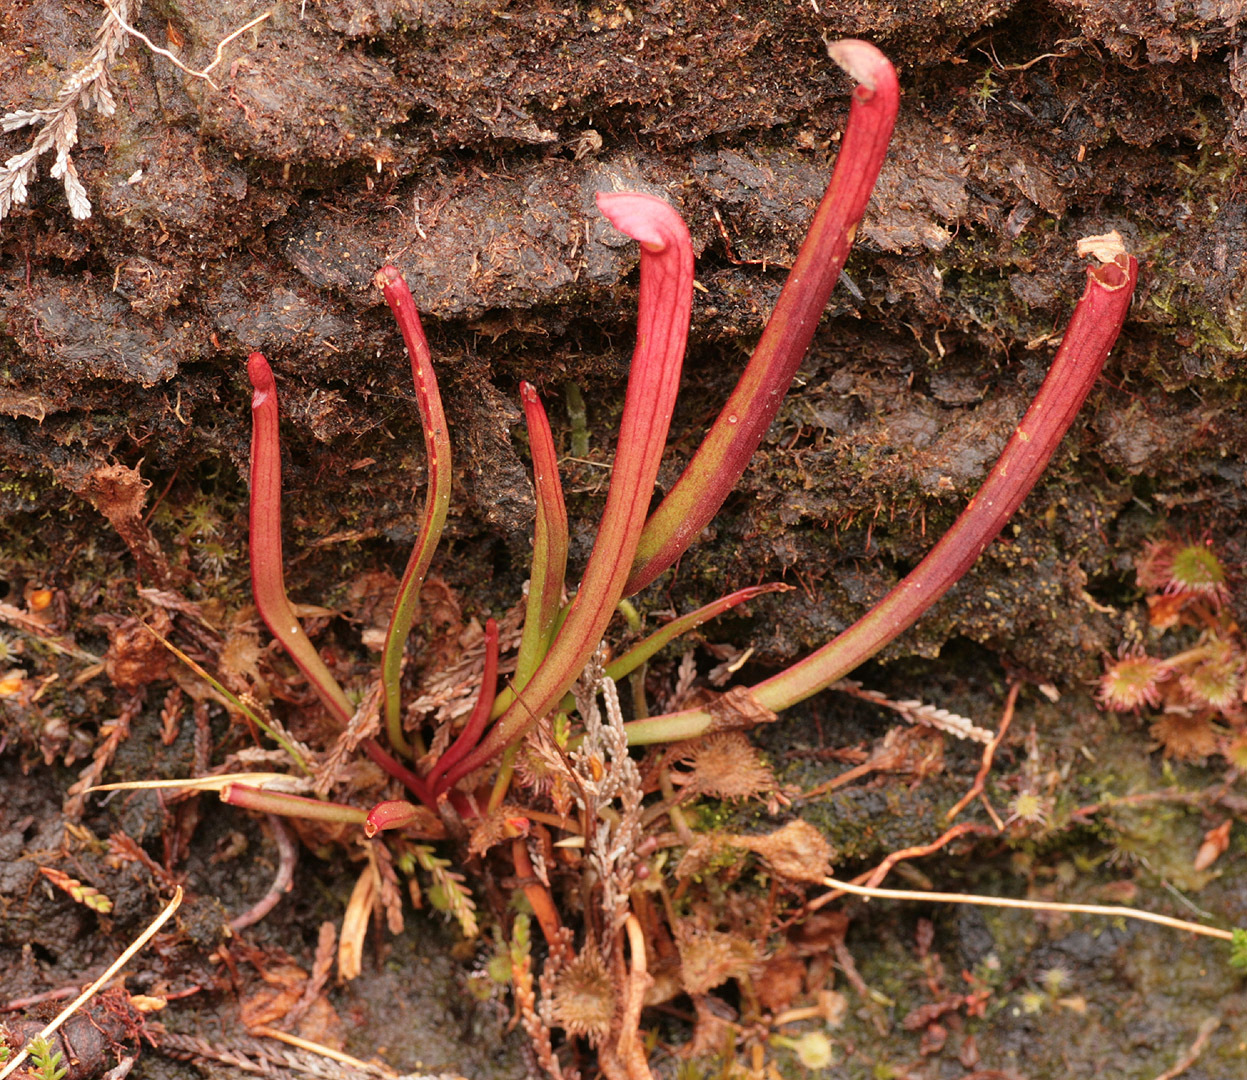 Image of pitcher plants